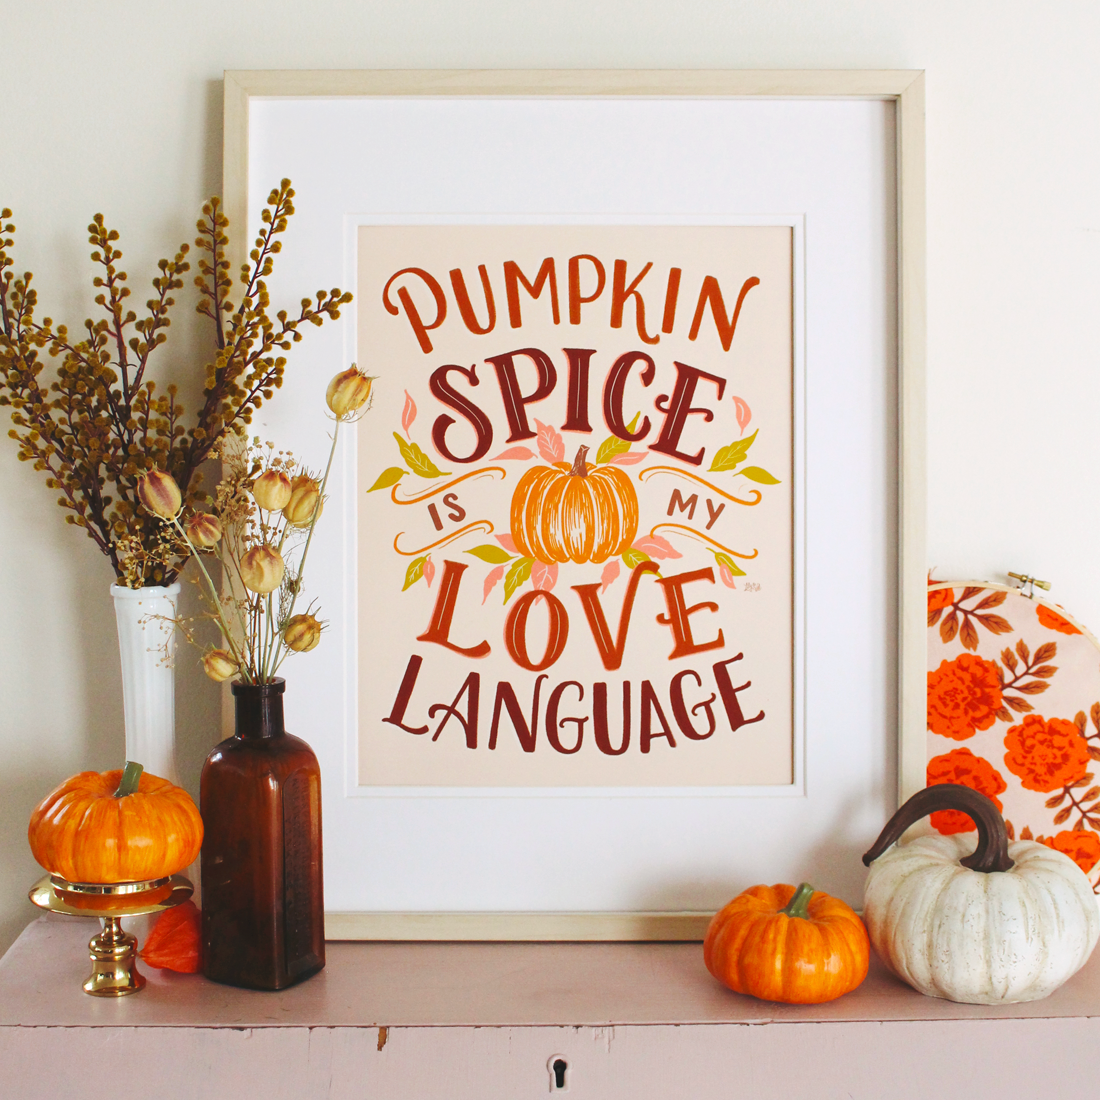 Pumpkin Spice is my Love Language Art Print for Fall